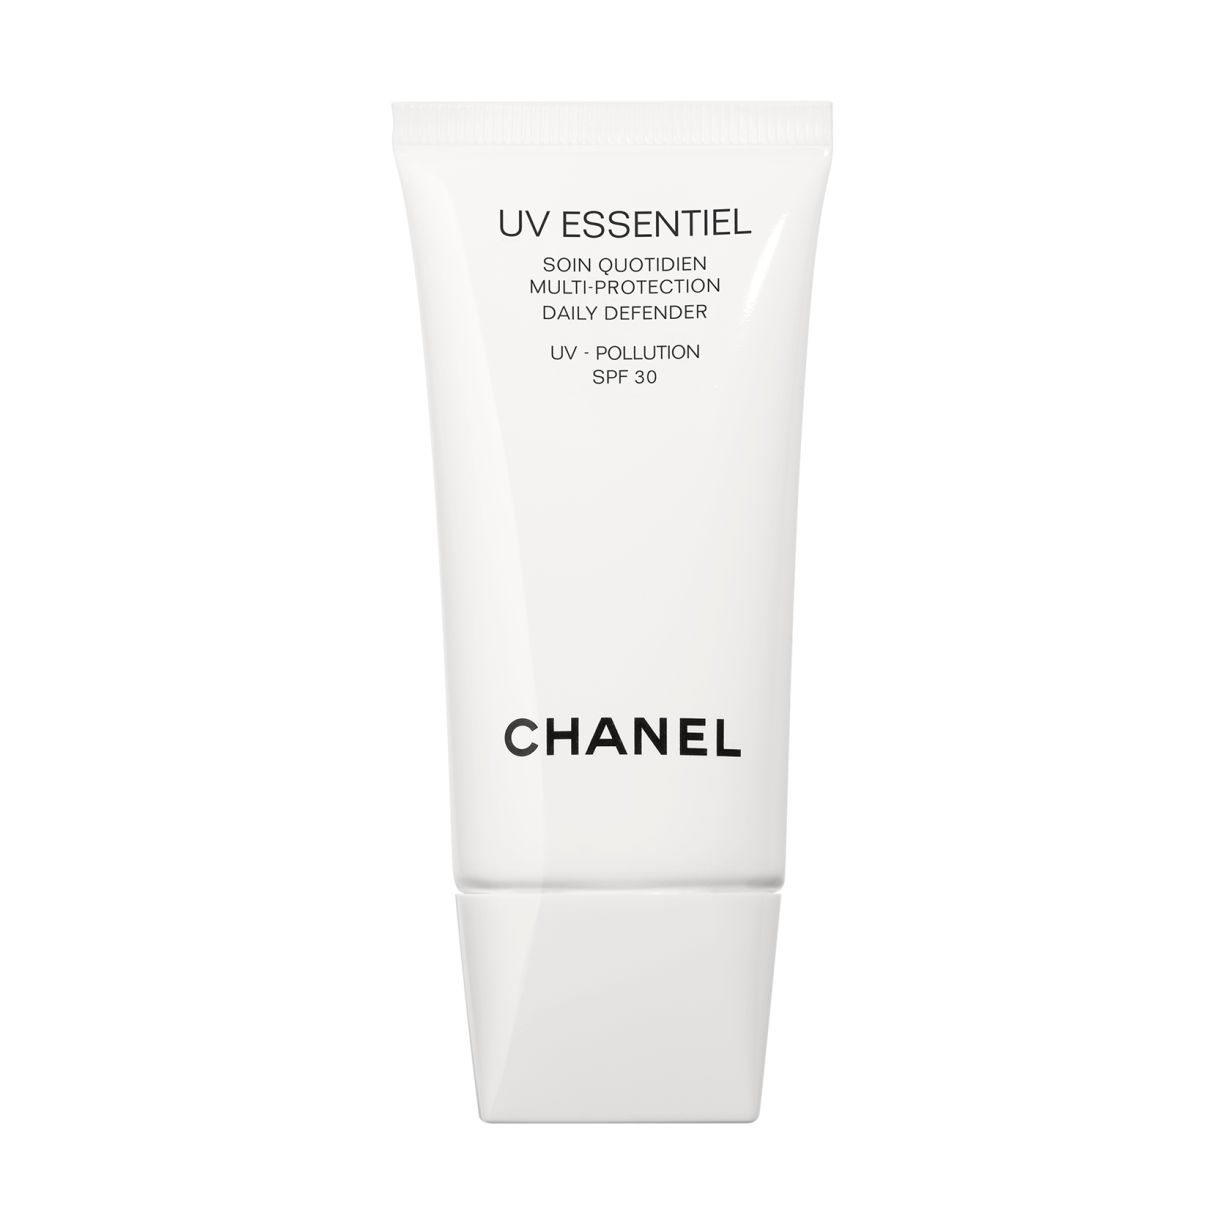 UV ESSENTIEL MULTI-PROTECTION DAILY DEFENDER UV - POLLUTION SPF30